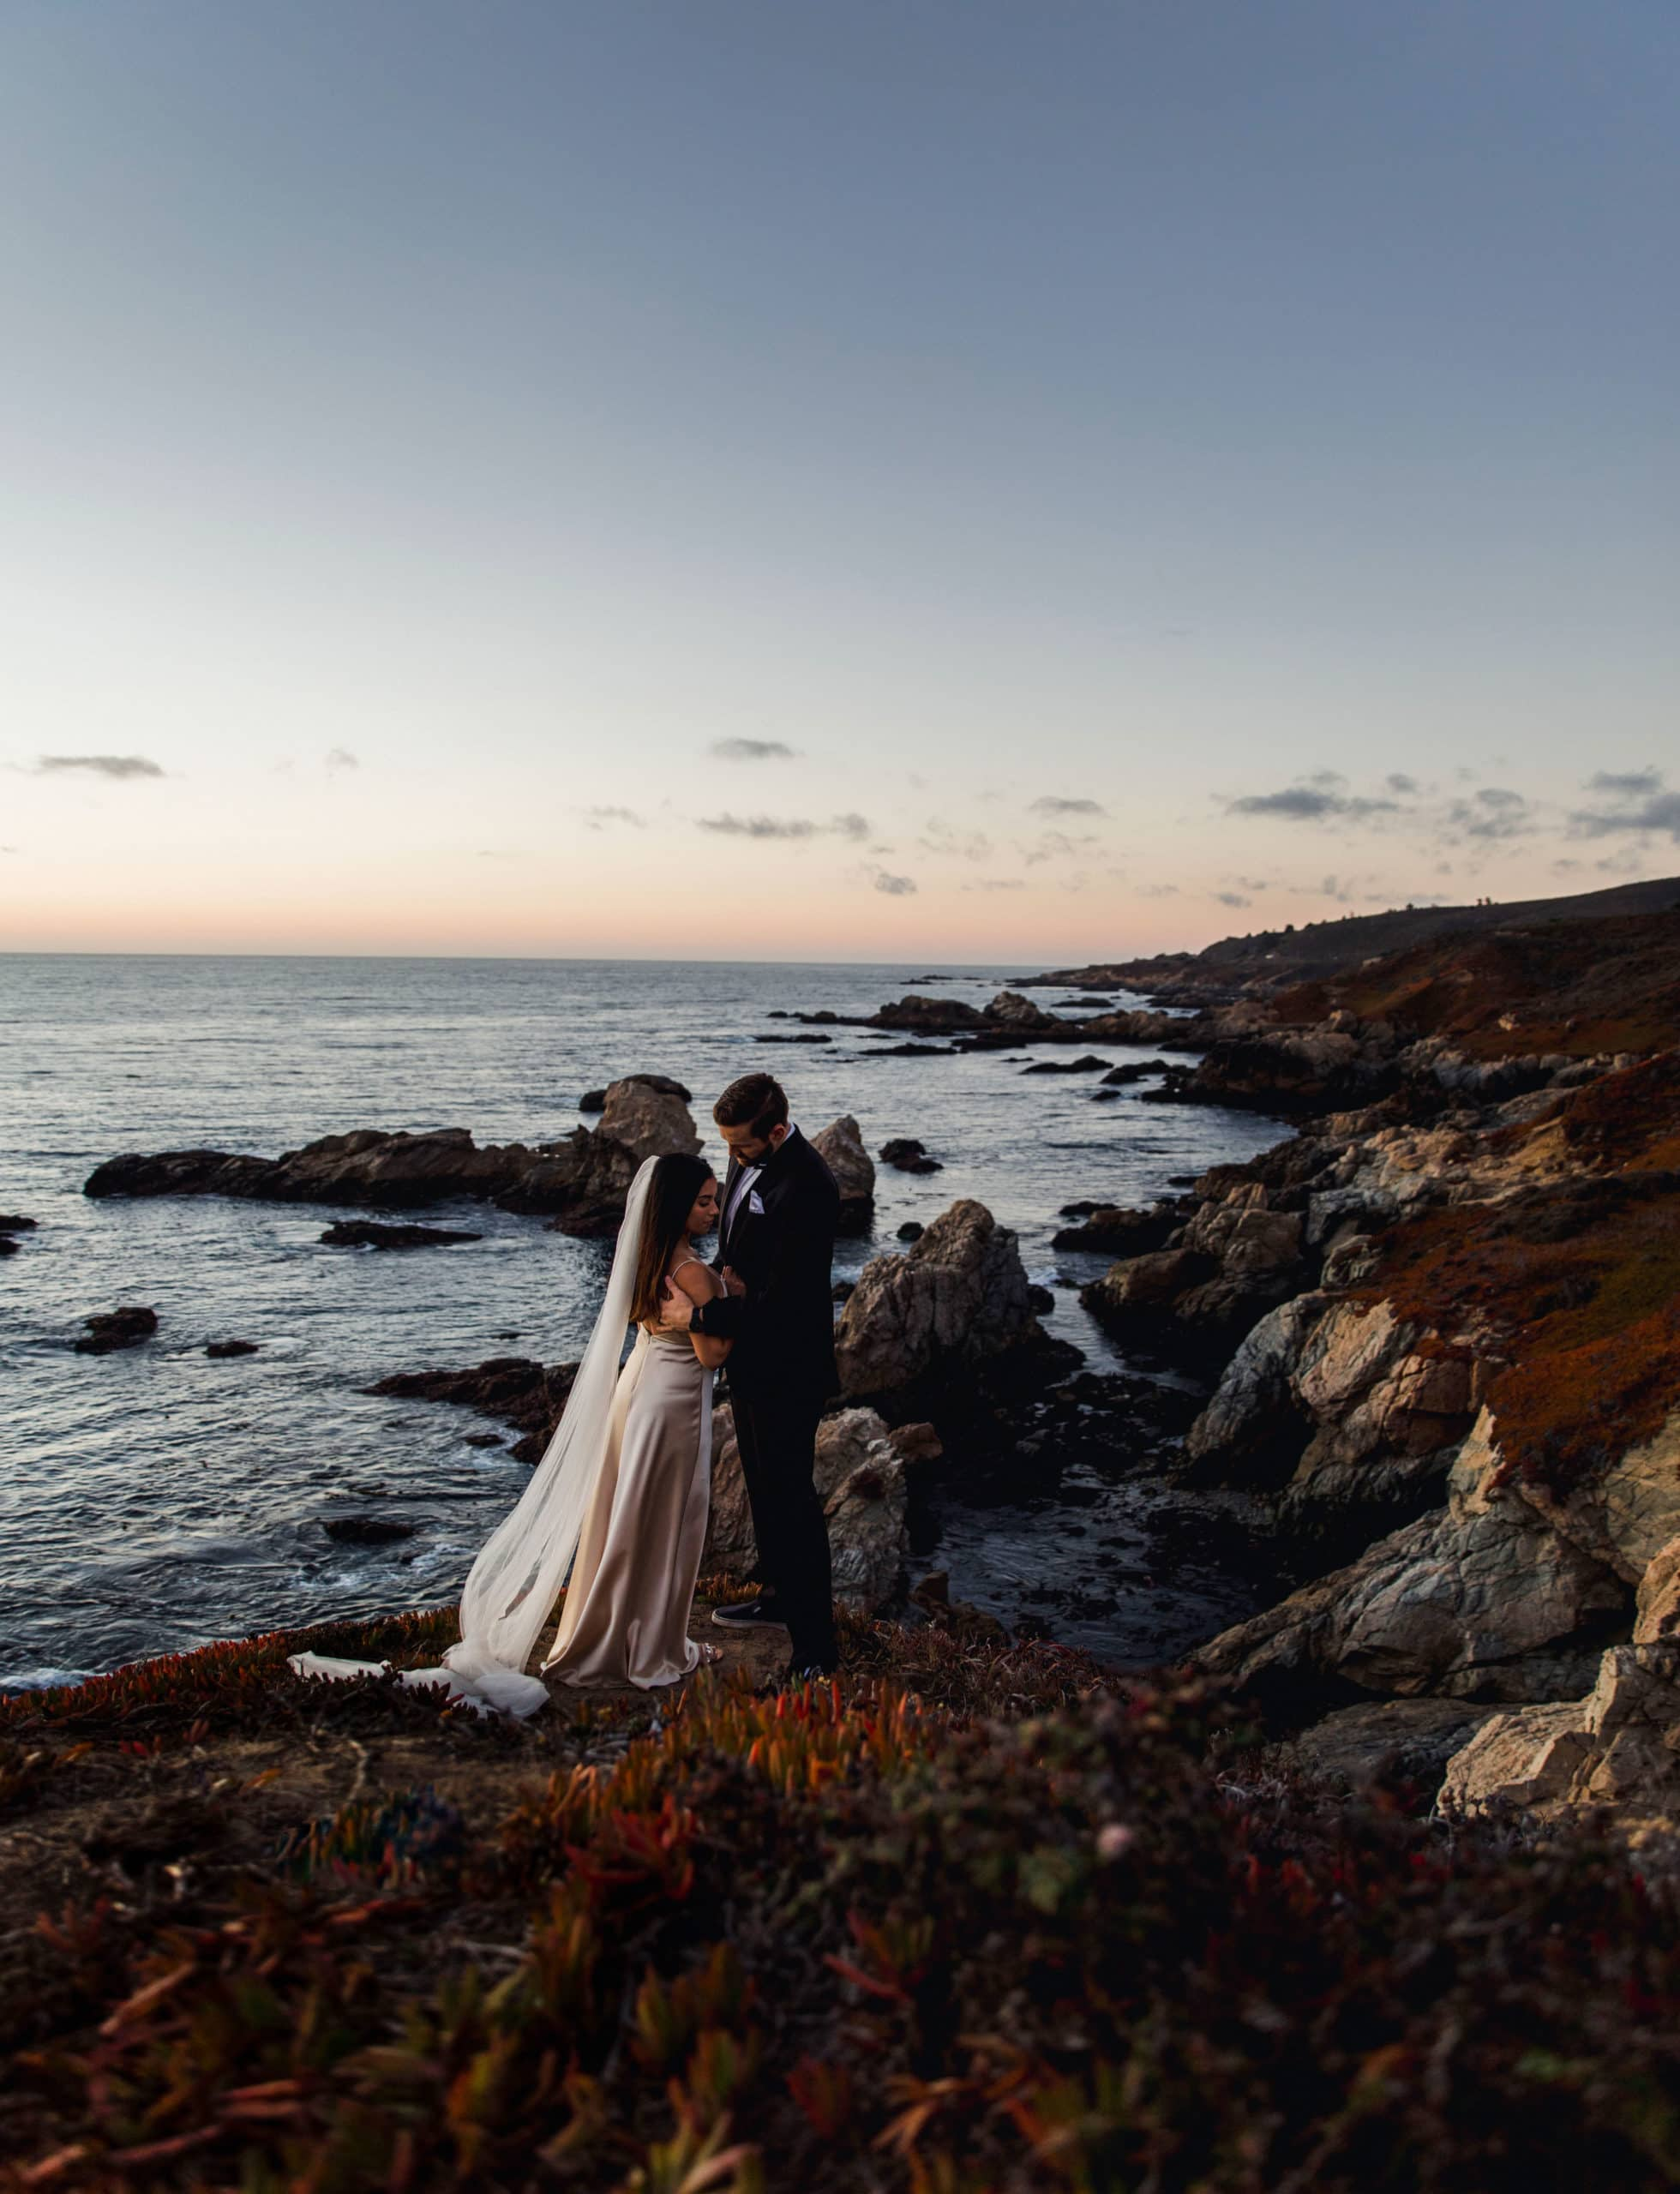 A wedding in Big Sur National Park also known as a California elopement.